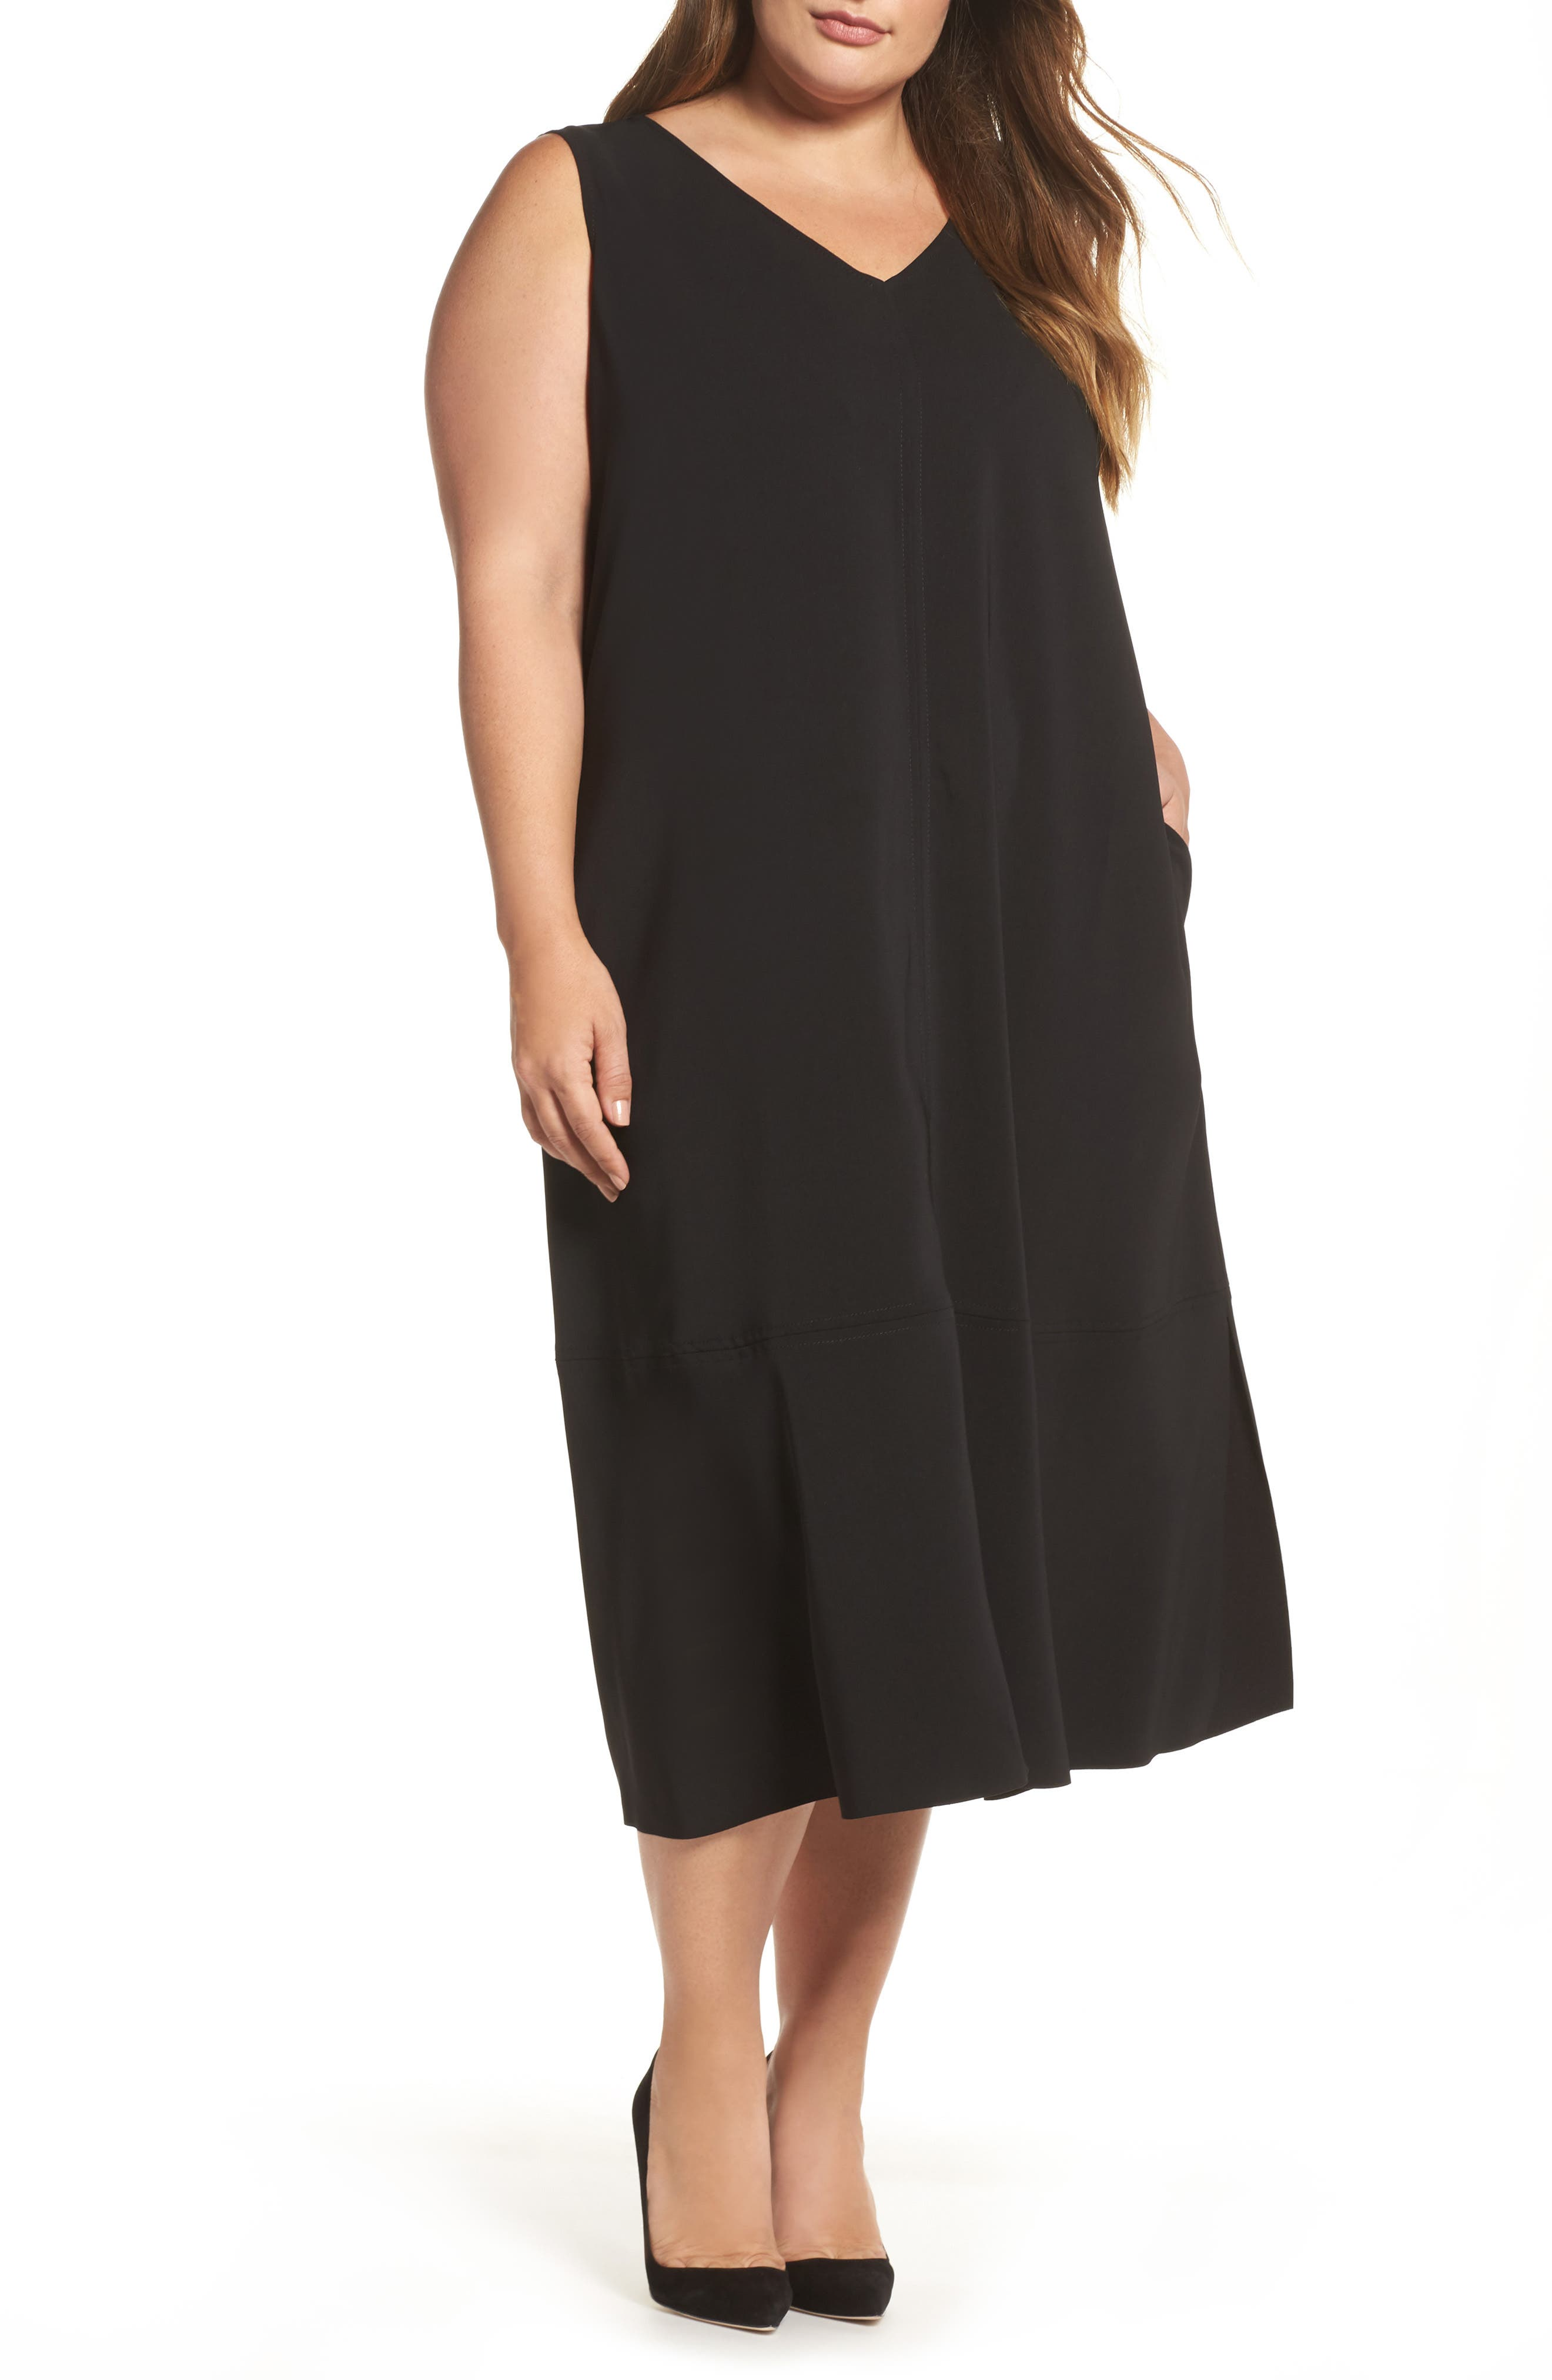 Main Image - Persona by Marina Rinaldi Donna Sleeveless Maxi Dress (Plus Size)